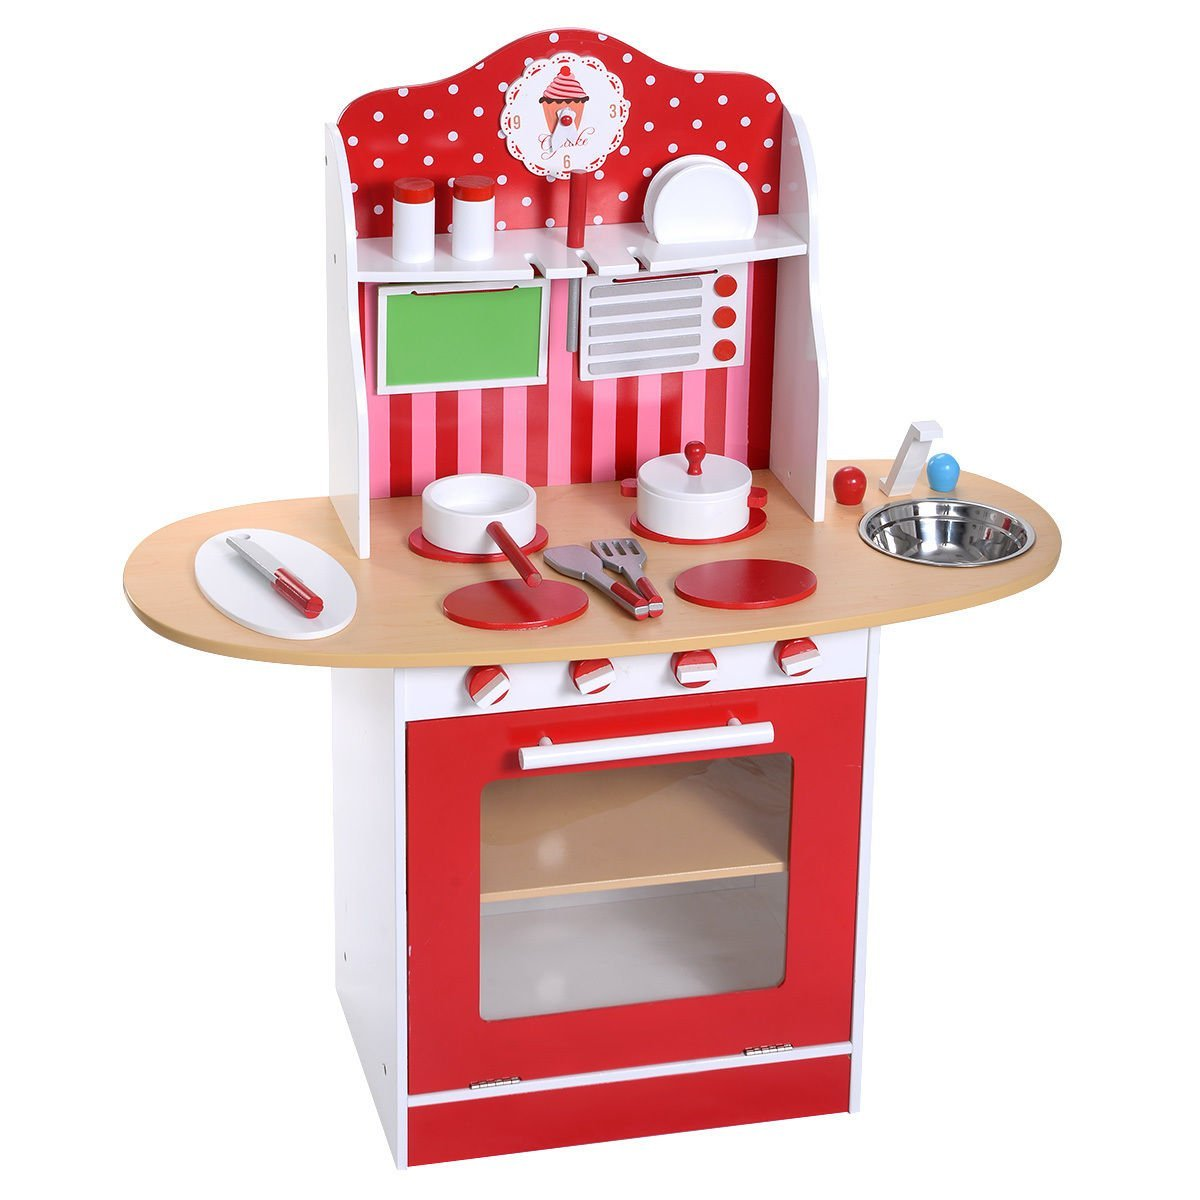 Get Quotations Costzon New Kids Wood Kitchen Toy Cooking Pretend Play Set Toddler Wooden Playset Gift